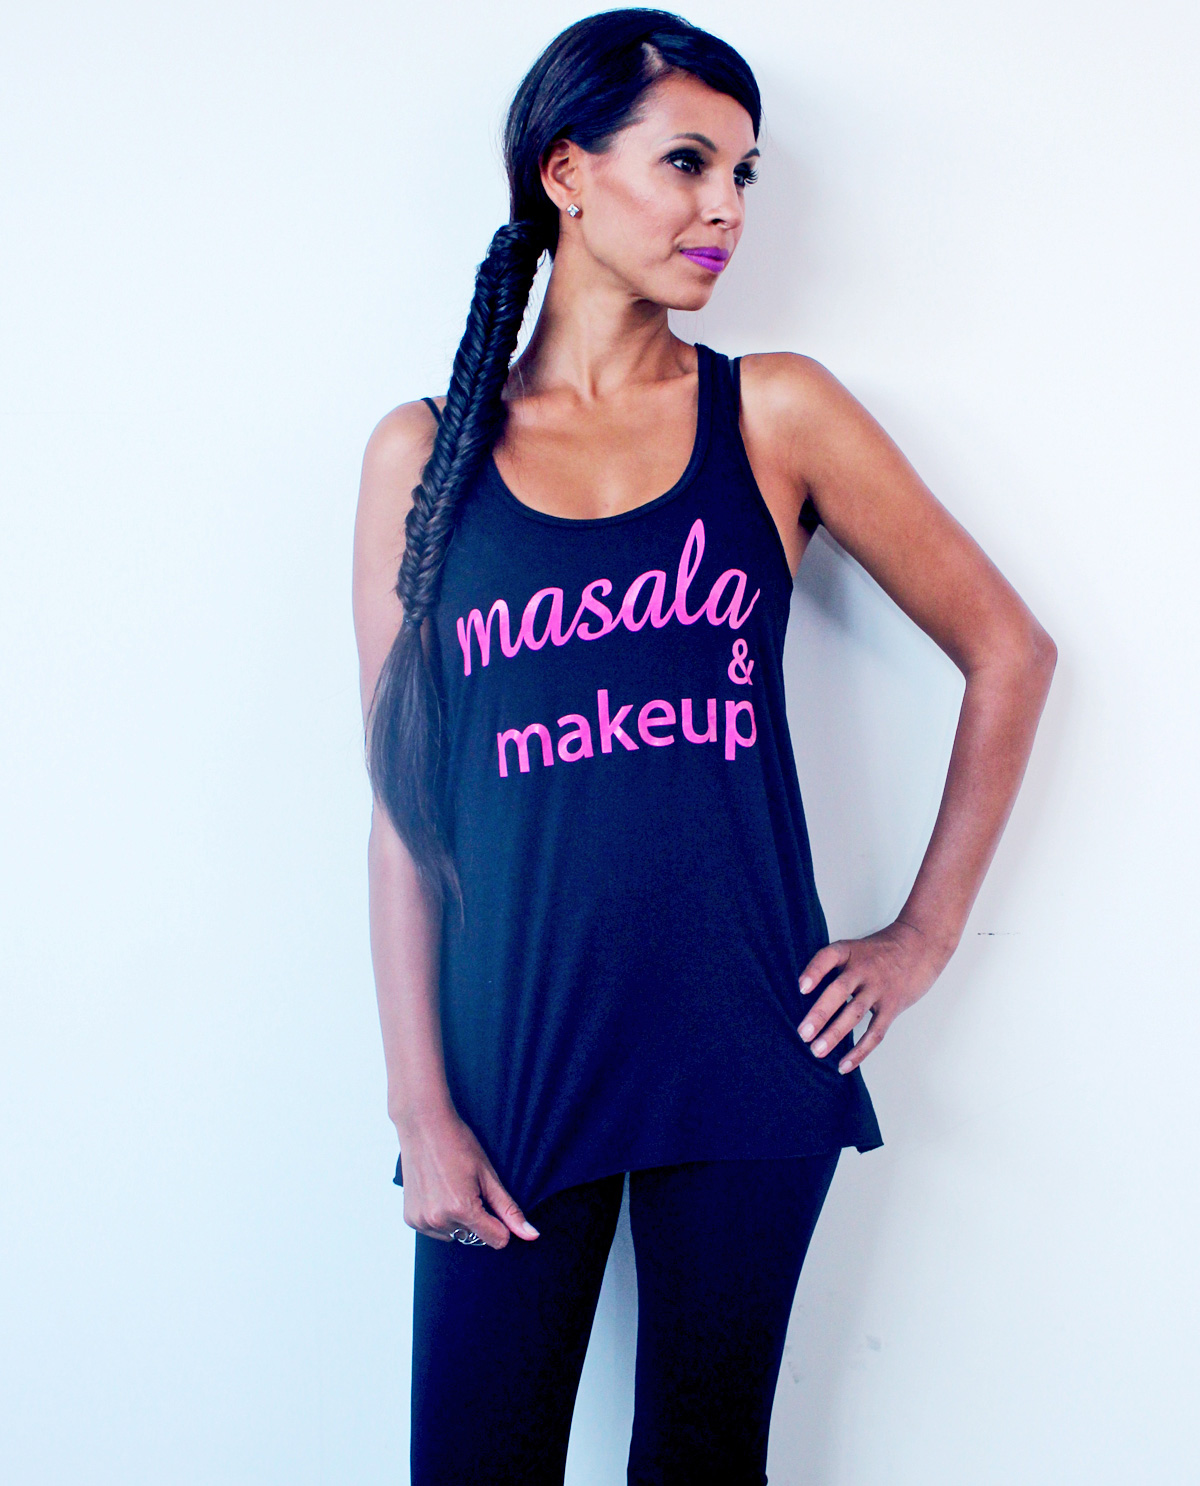 South Asian female model wearing racerback black tank top with Masala & Makeup written on front. South Asian Desi Themed Graphic Design t.shirts by Brown Man Clothing Co.